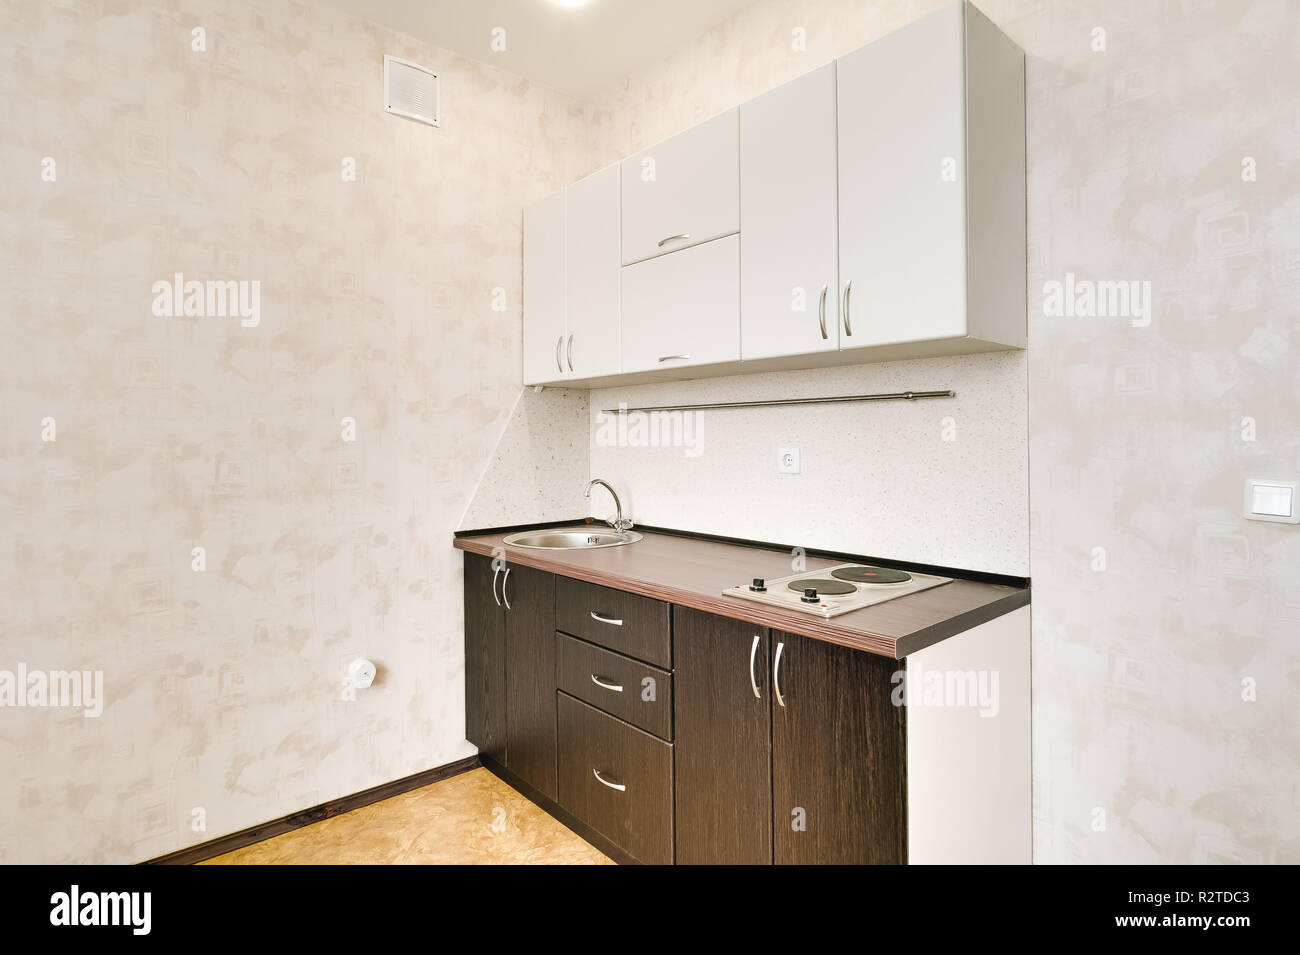 Interior In A Small Studio Apartment Kitchen Set Repair In A New Building Stock Photo Alamy